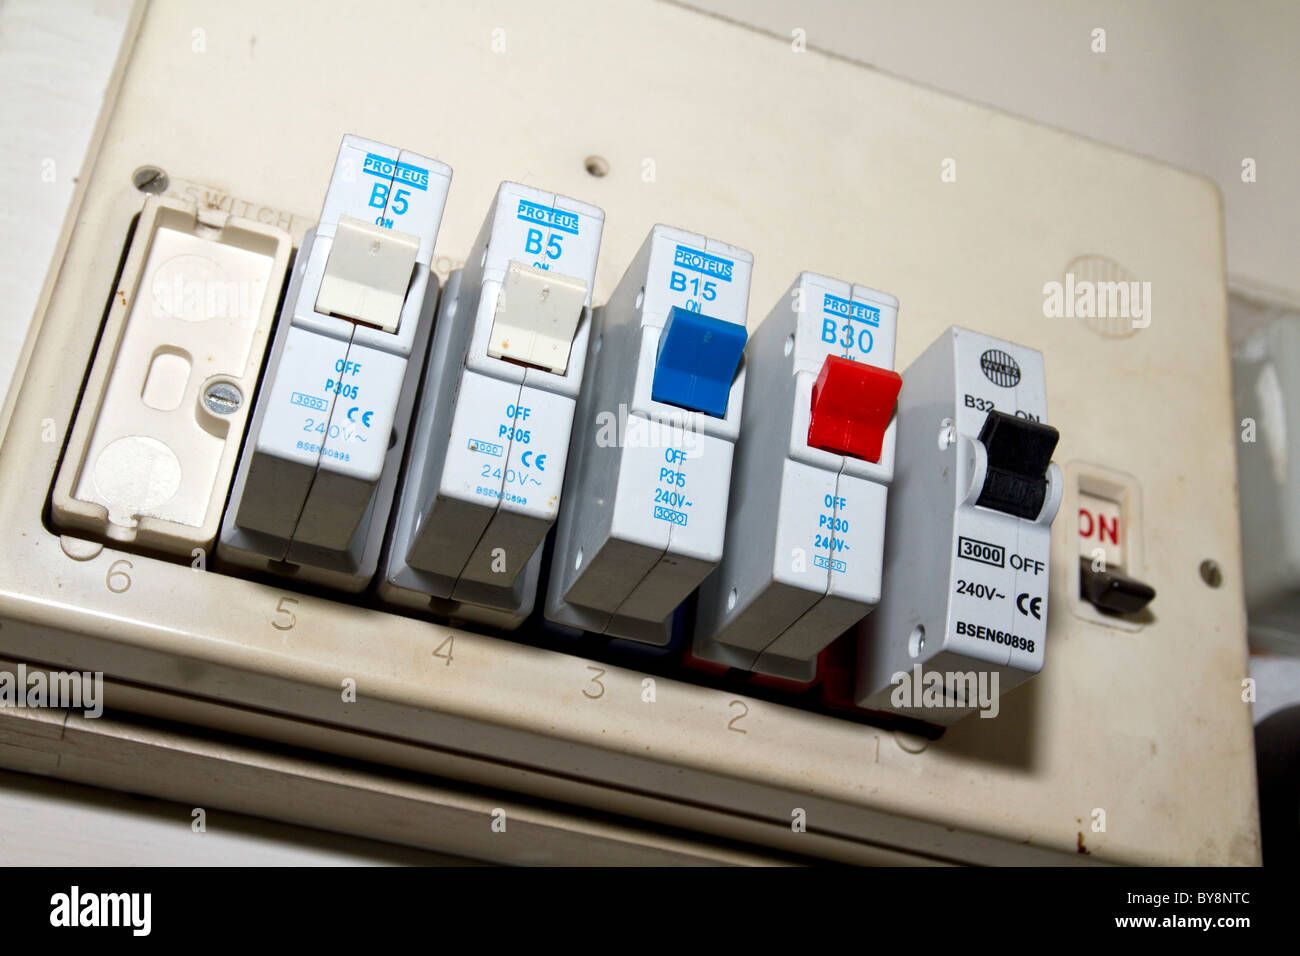 uk old electric fuse box in a london house BY8NTC uk old electric fuse box in a london house stock photo, royalty fuse box in house at aneh.co